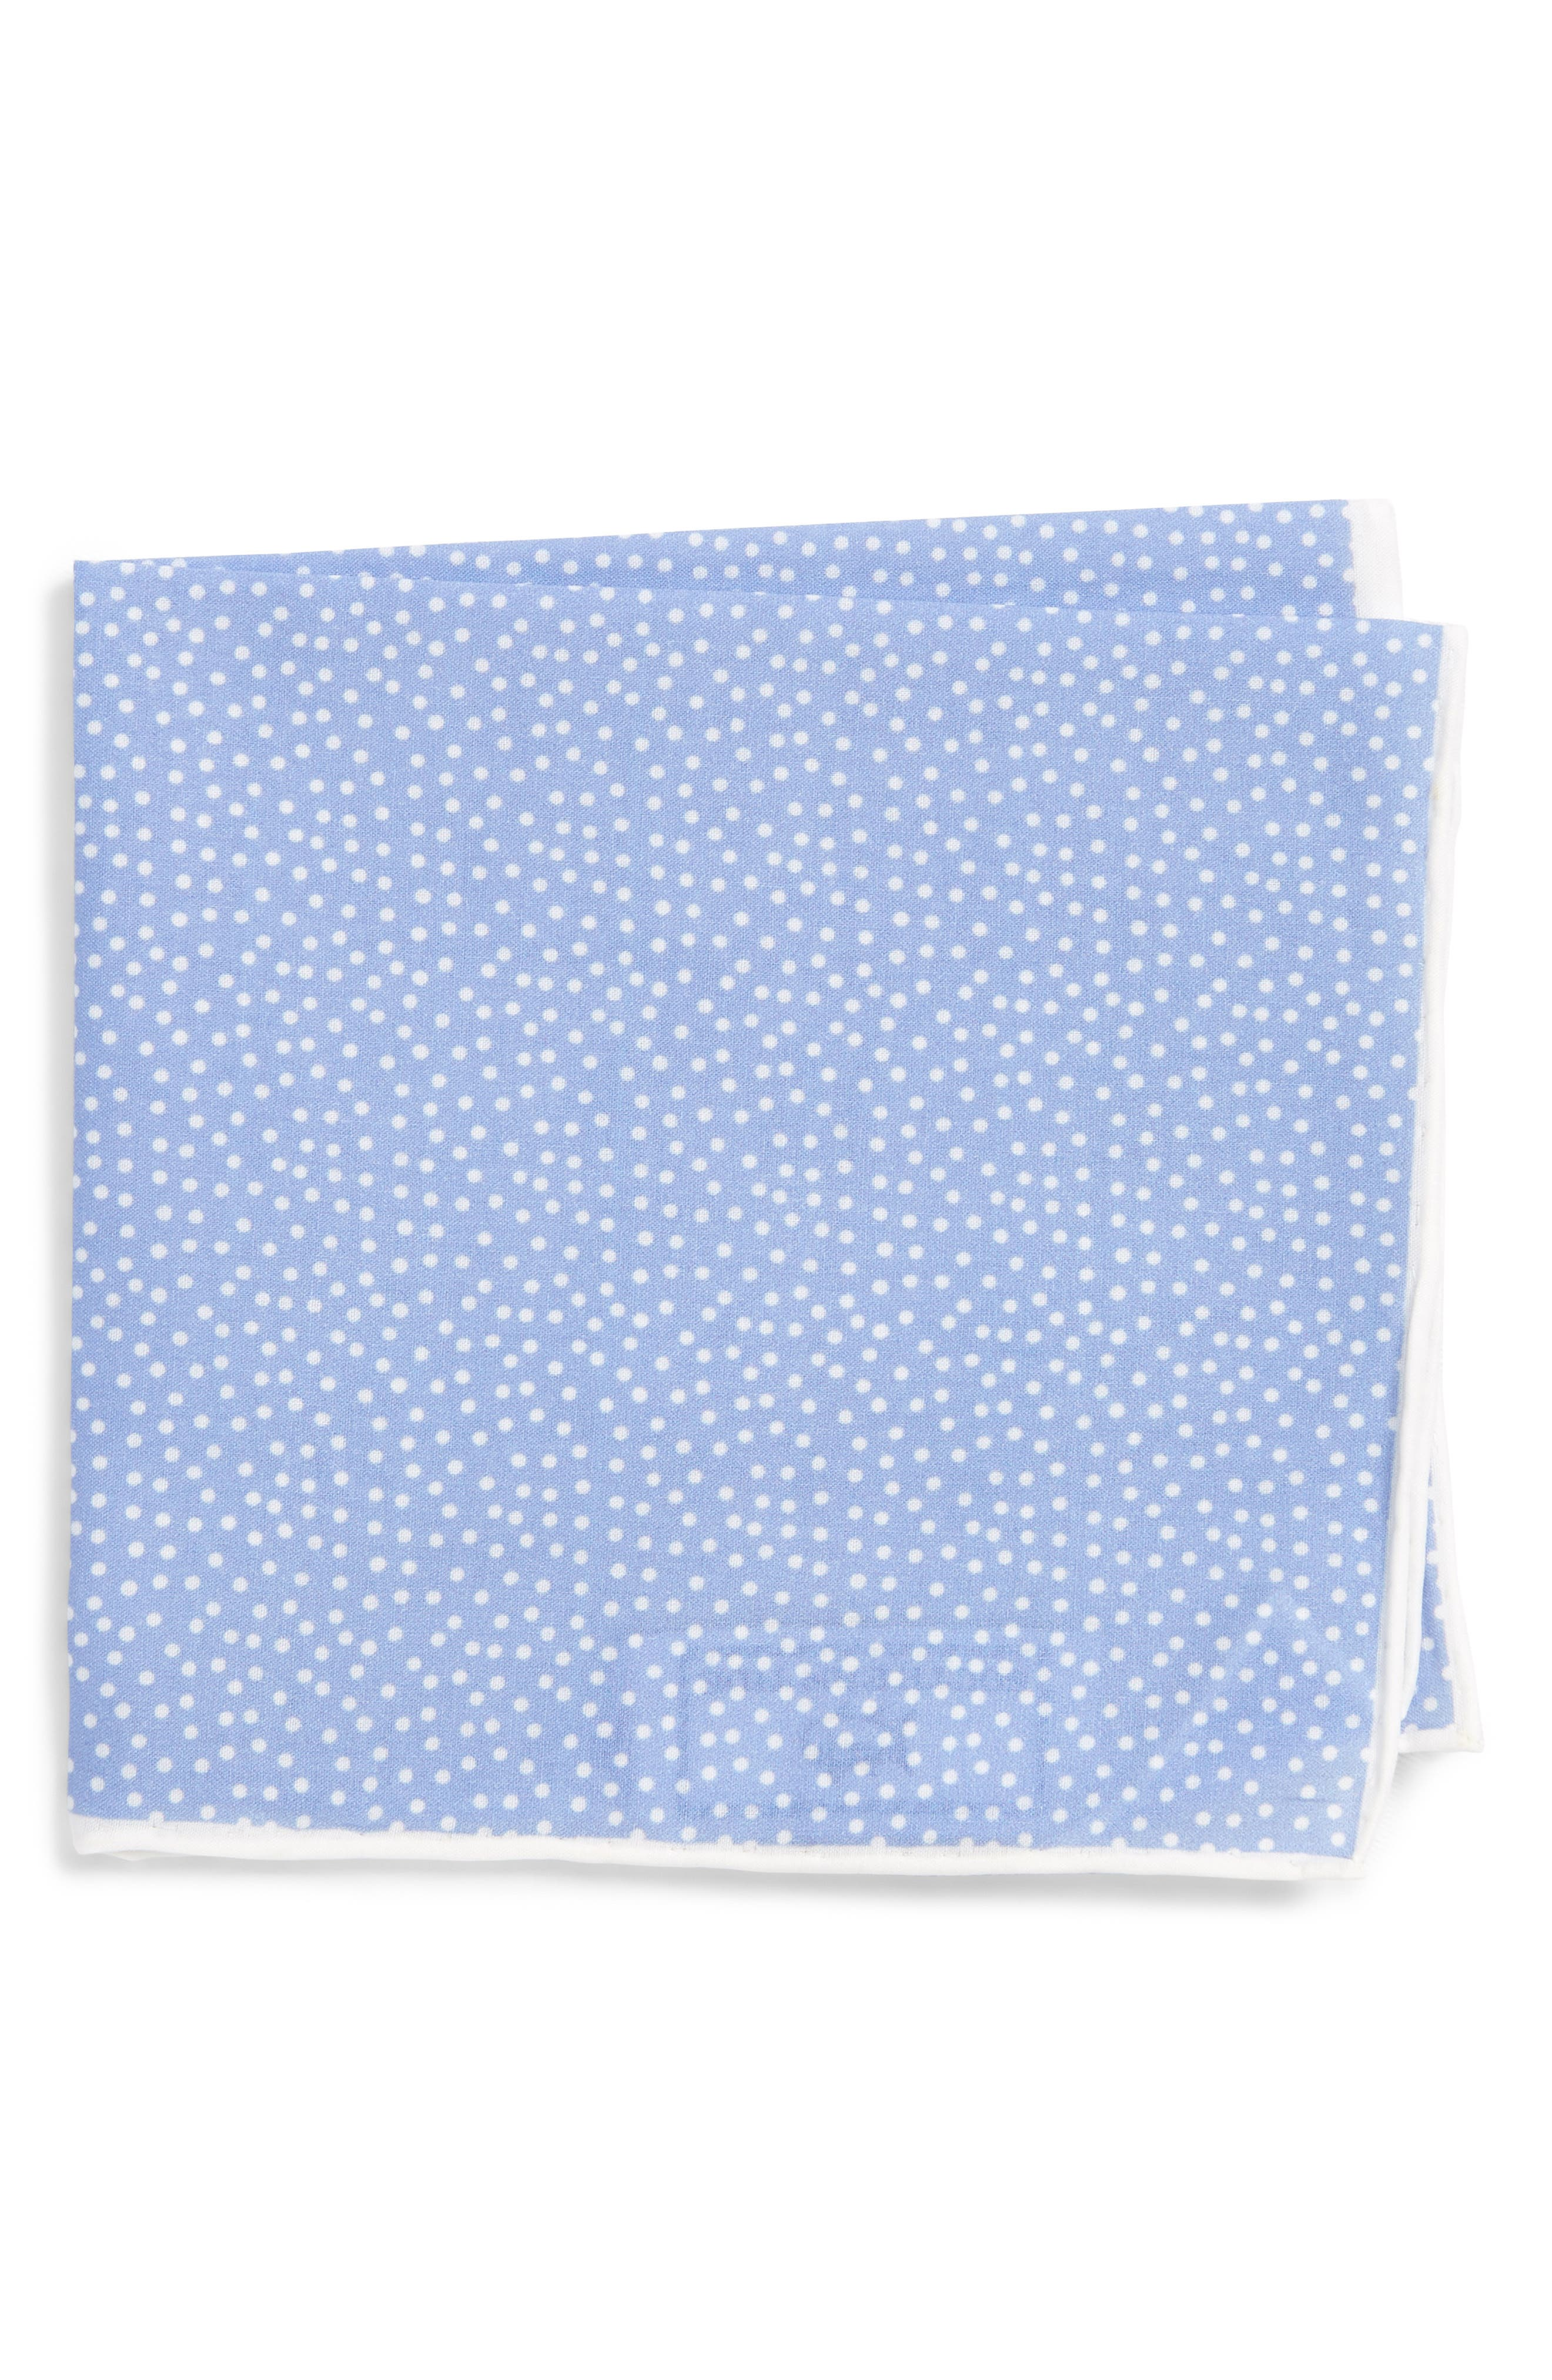 SOUTHERN TIDE,                             Sagamore Spots Cotton & Silk Pocket Square,                             Main thumbnail 1, color,                             BLUE